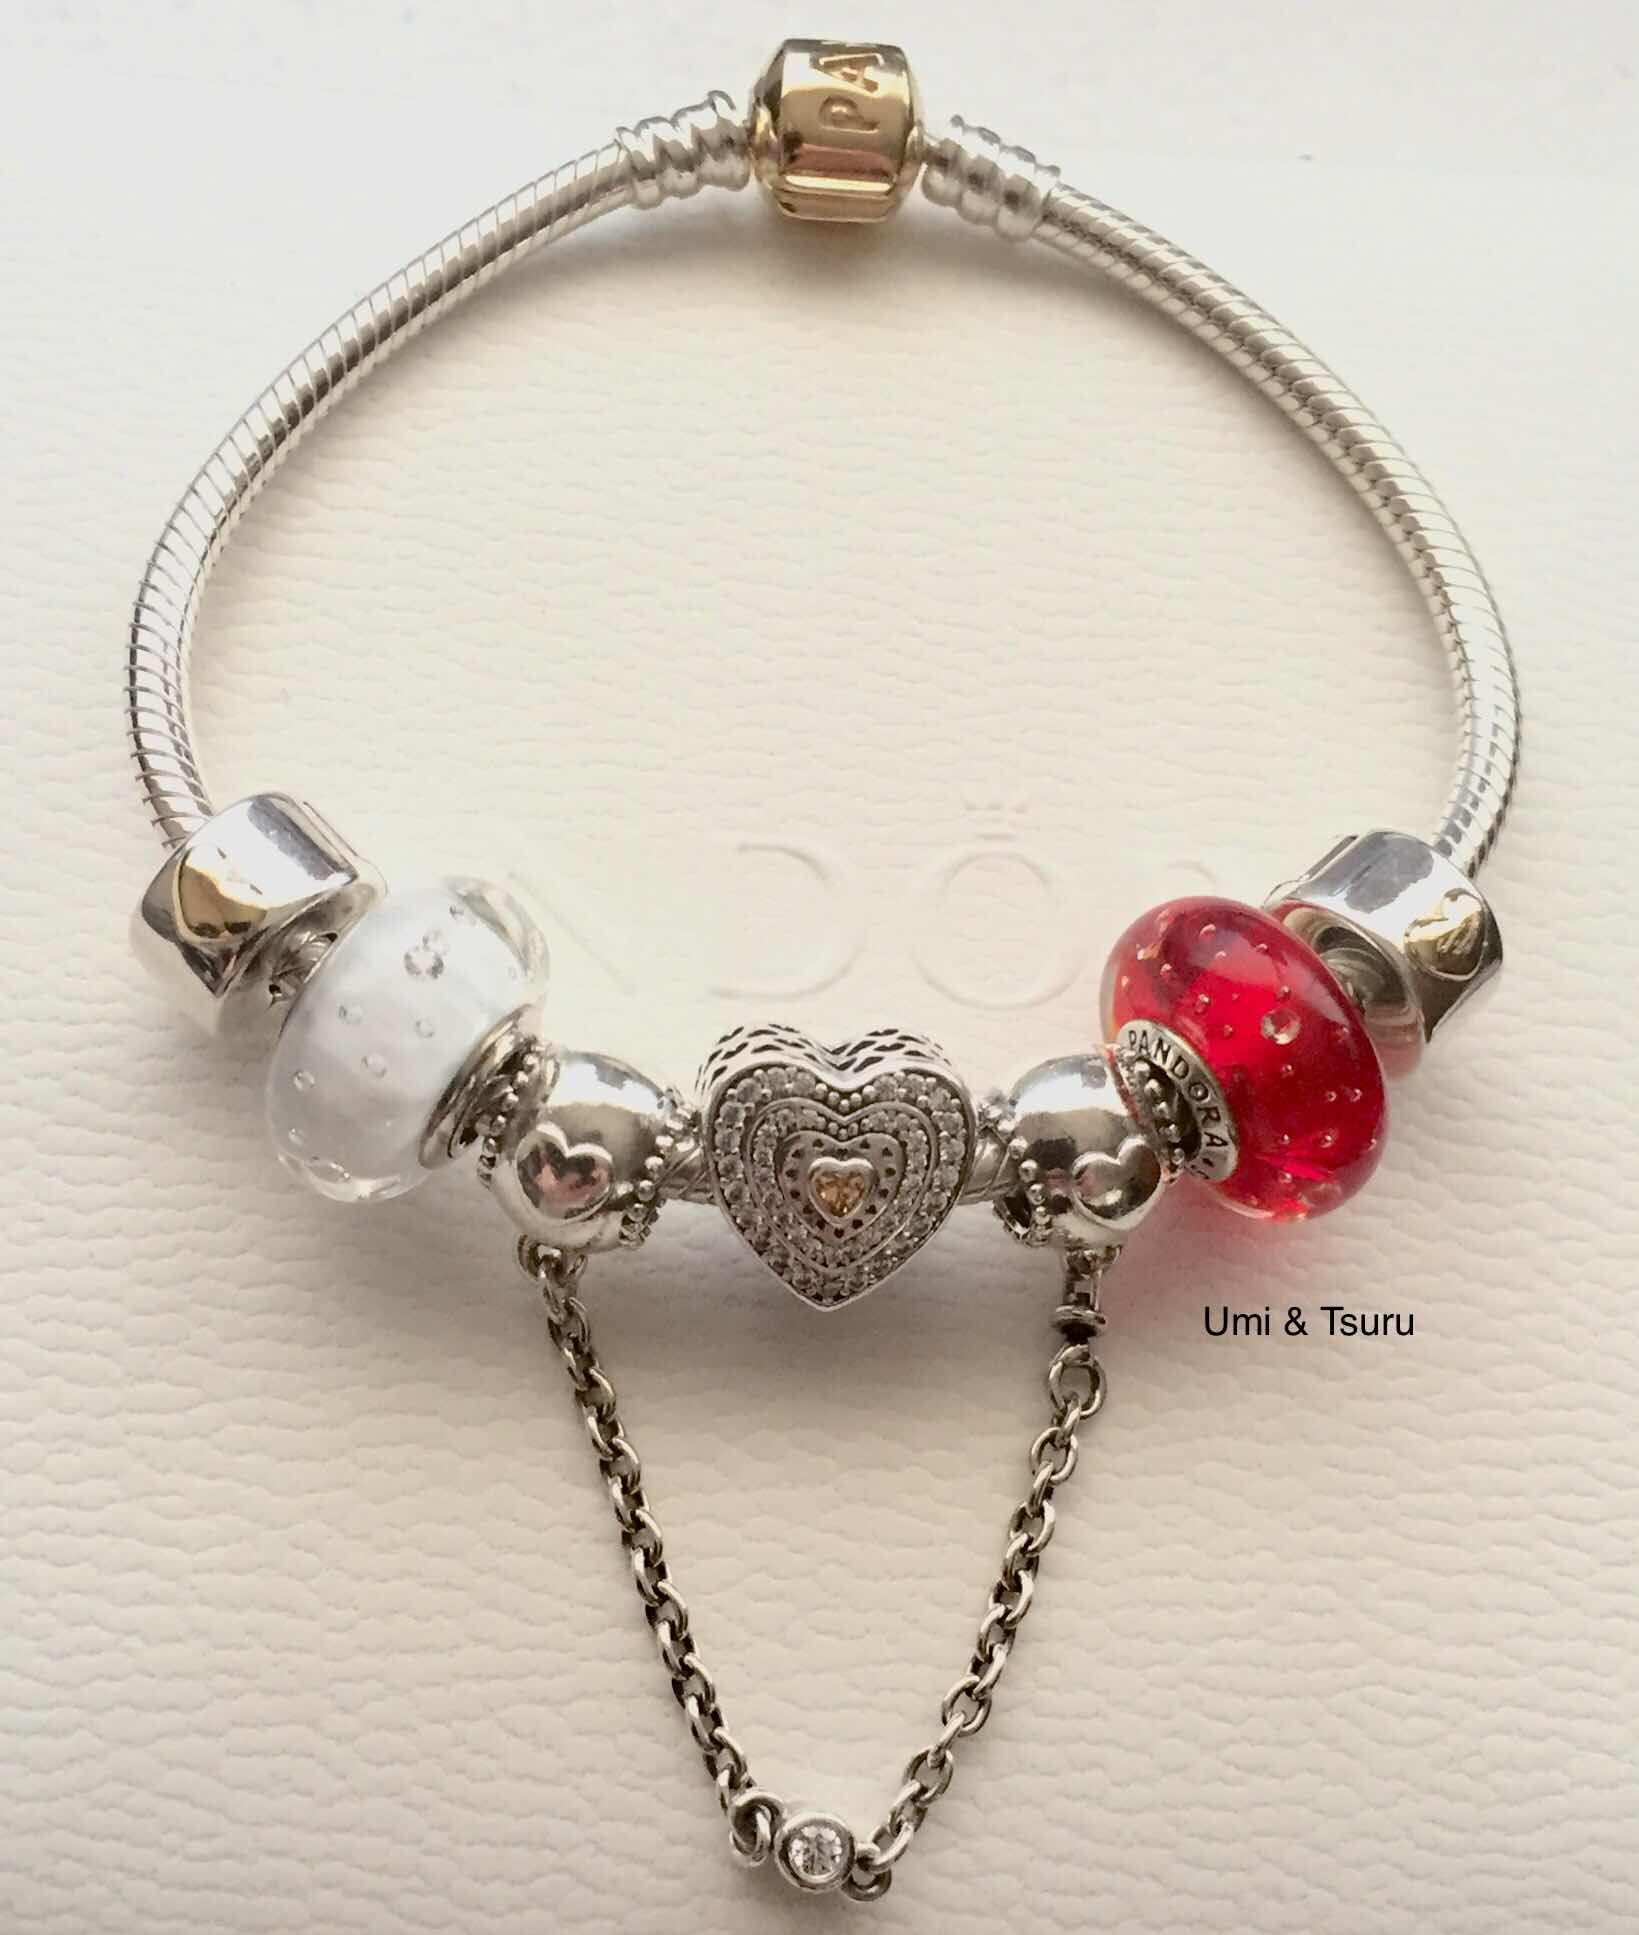 pin travel charms bracelet catch bangle pinterest bangles themed my pandora haul dream